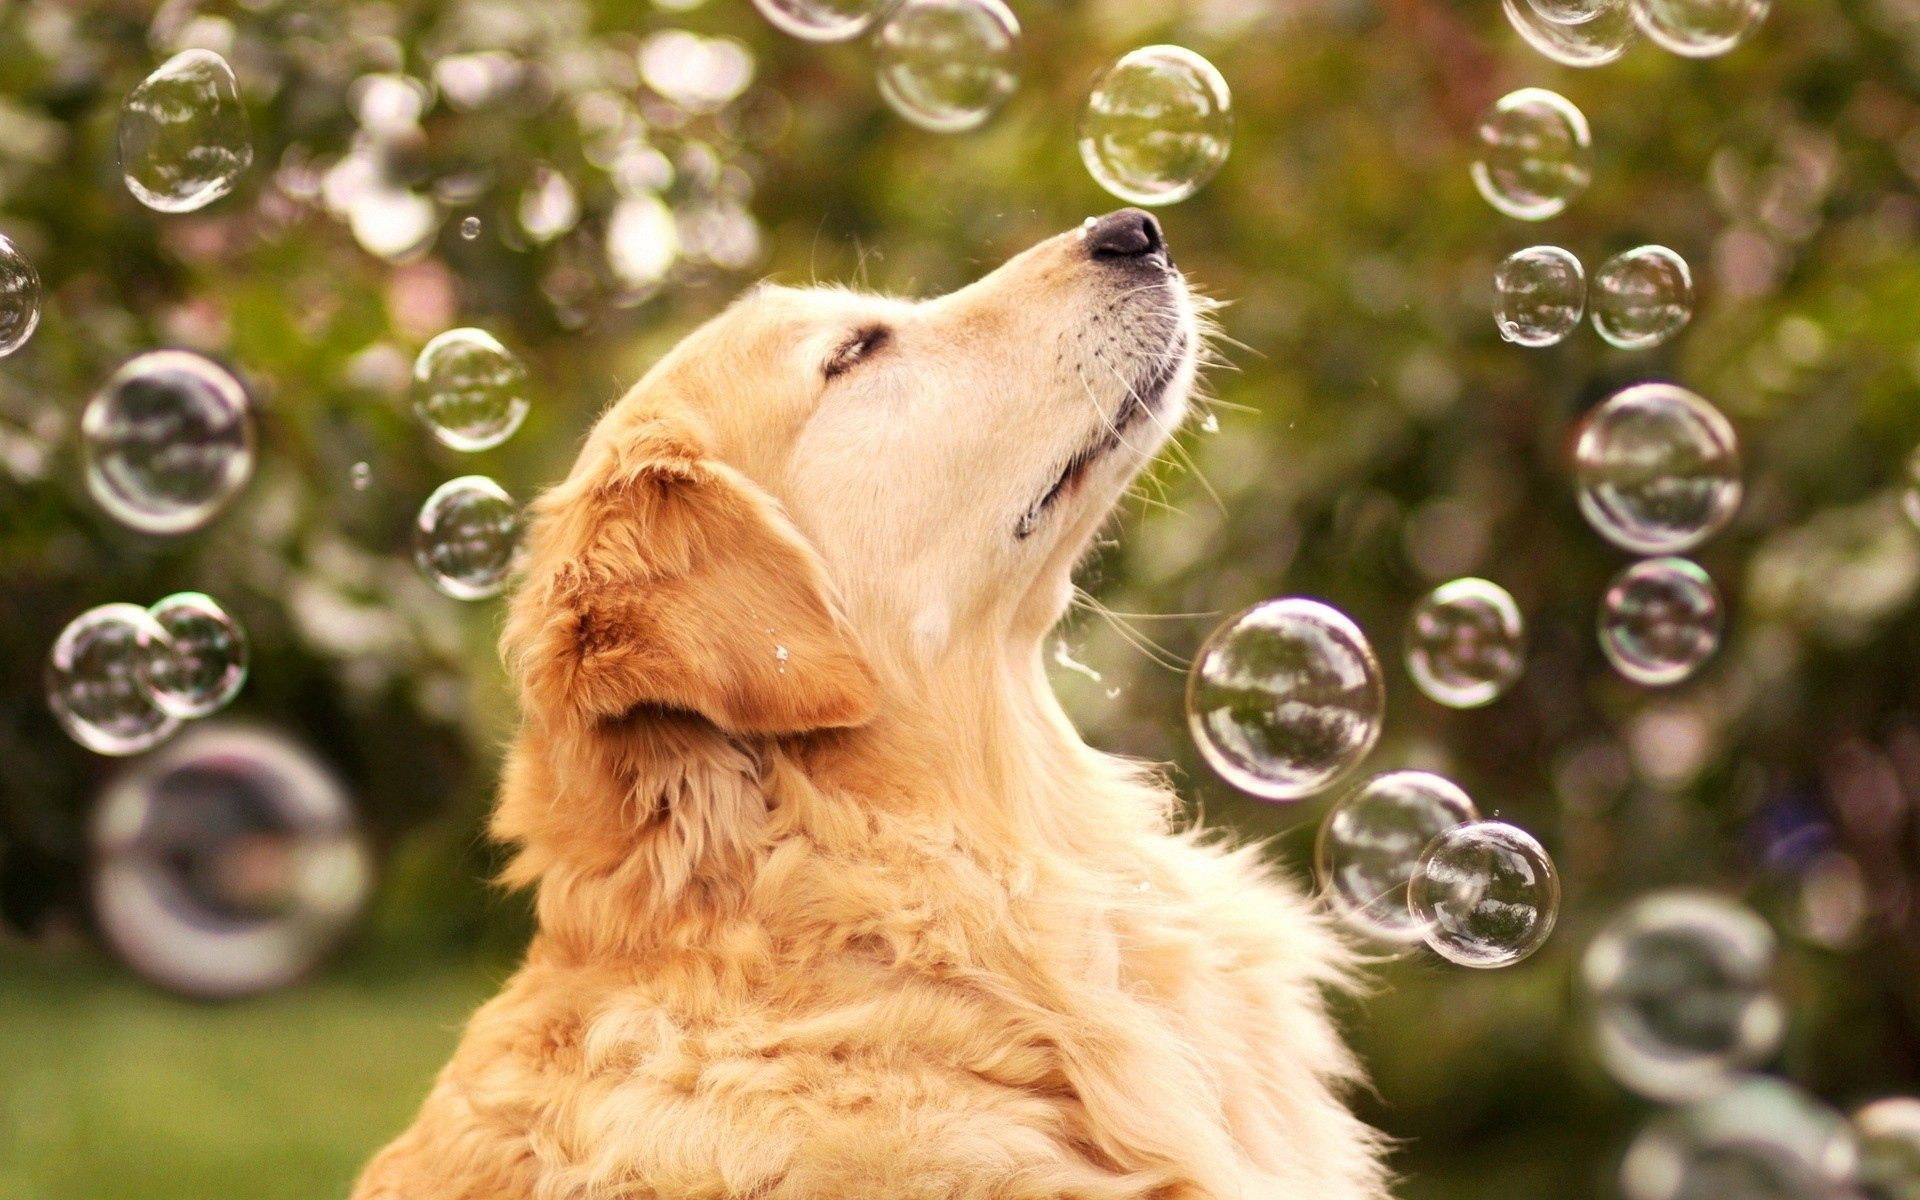 102055 download wallpaper Animals, Dog, Bubble, Bubbles, Sight, Opinion screensavers and pictures for free